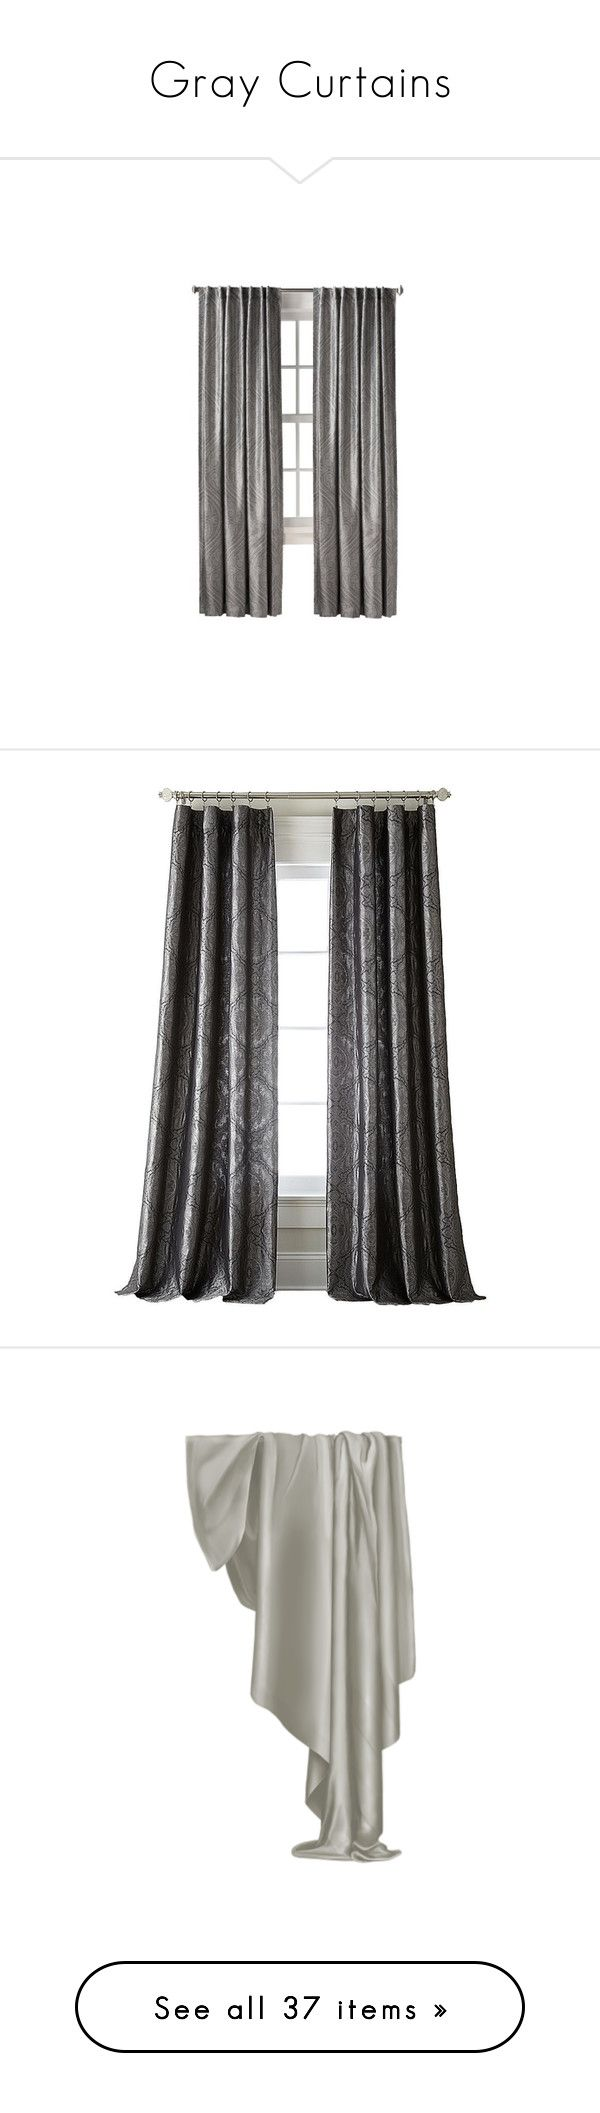 """""""Gray Curtains"""" by lailoooo ❤ liked on Polyvore featuring home, home decor, window treatments, curtains, grey curtain panels, target curtain panels, gray window treatments, ogee curtains, target curtains and tab curtain panels"""